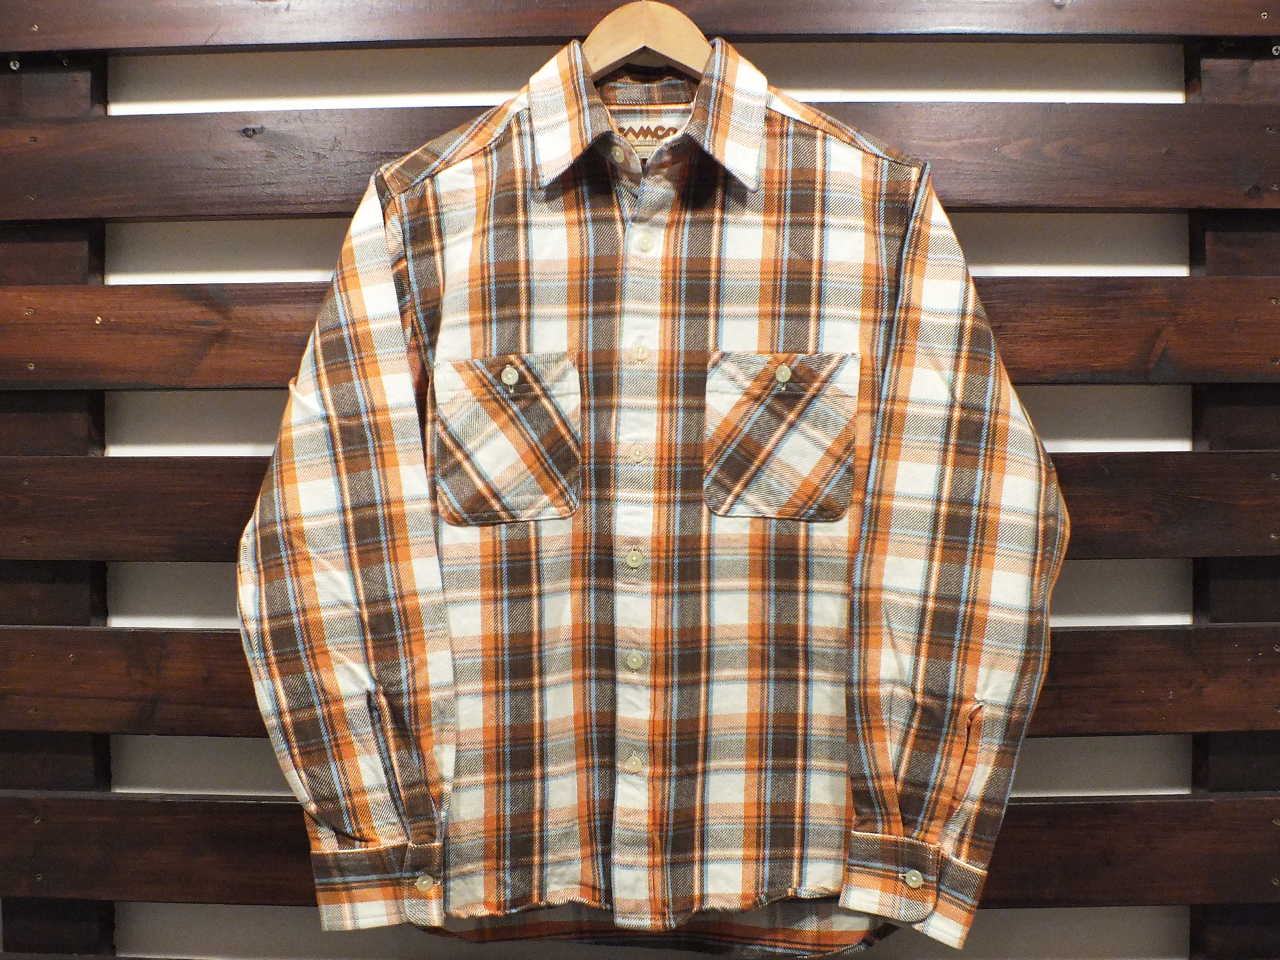 CAMCO HEAVY WEIGHT FLANNEL SHIRTS #21-B